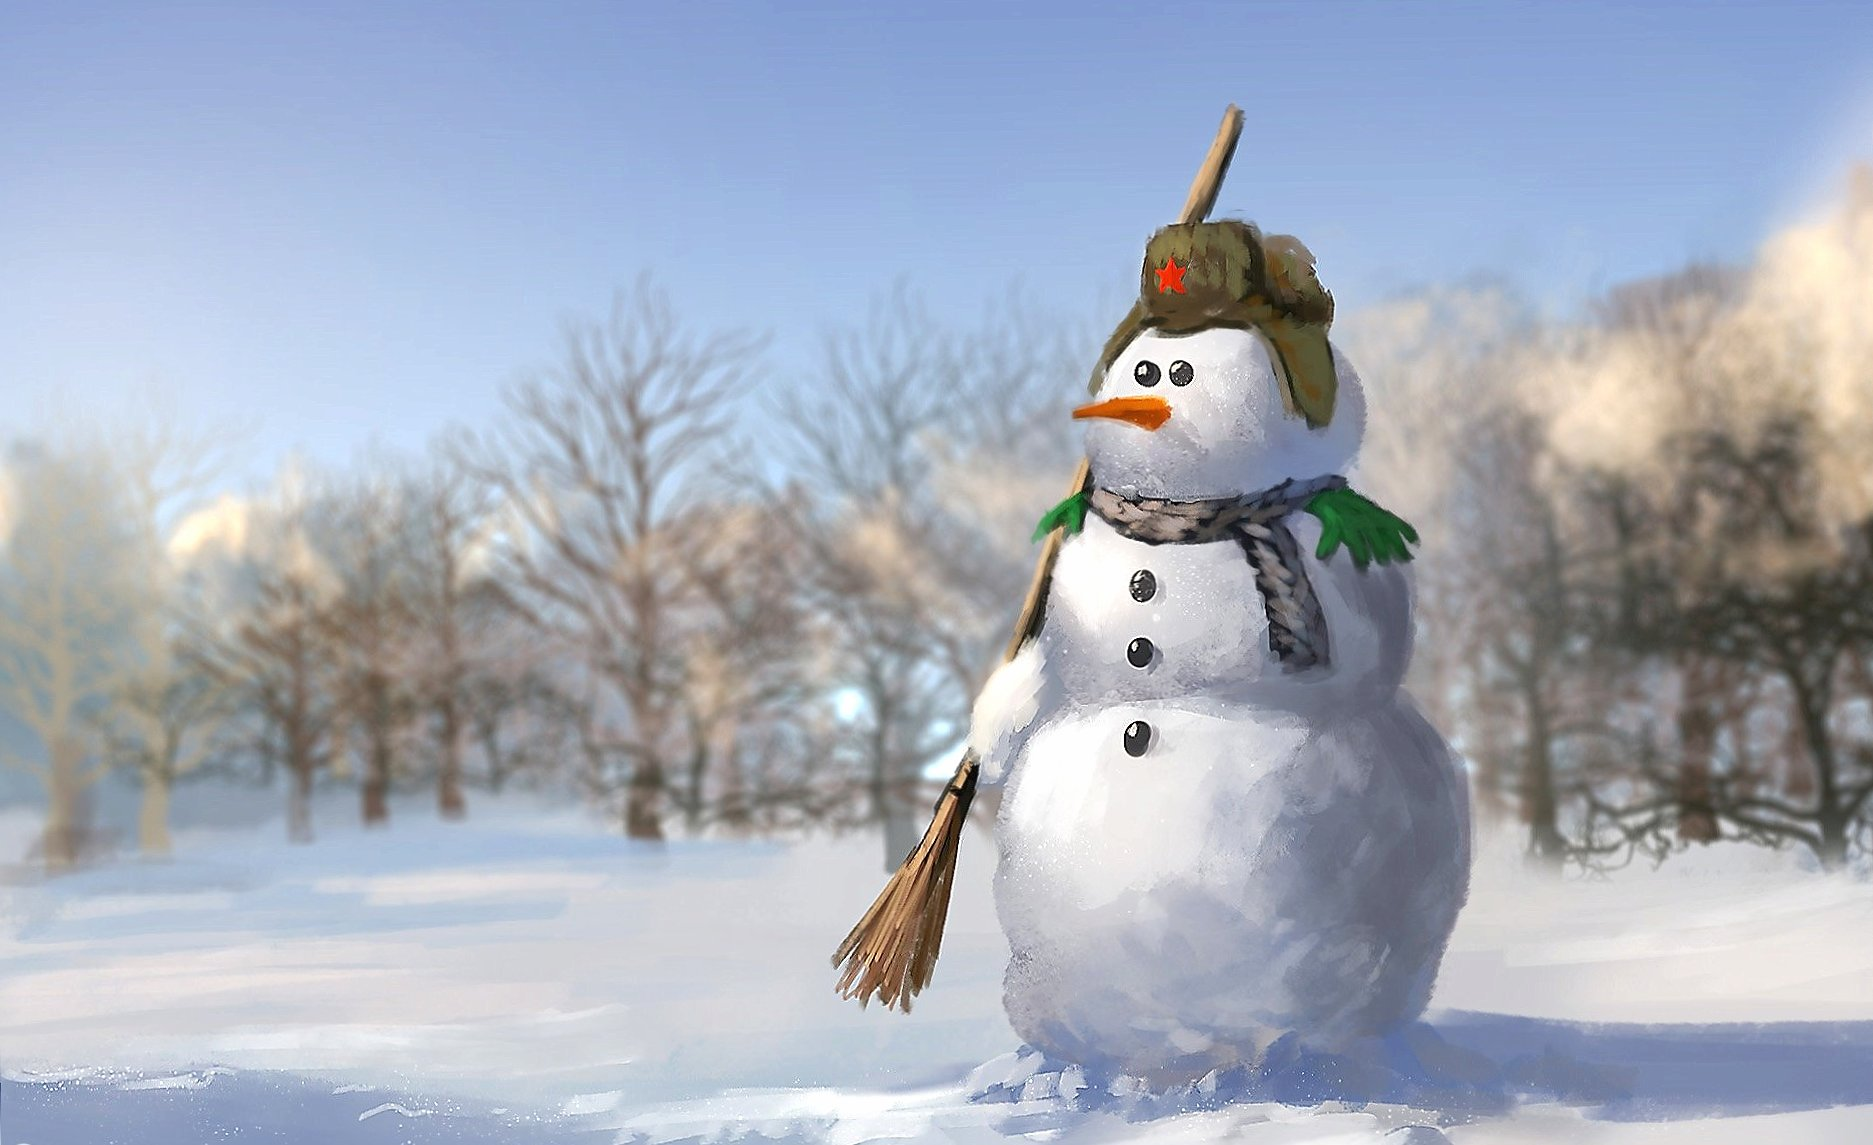 Snowman at 1024 x 768 size wallpapers HD quality